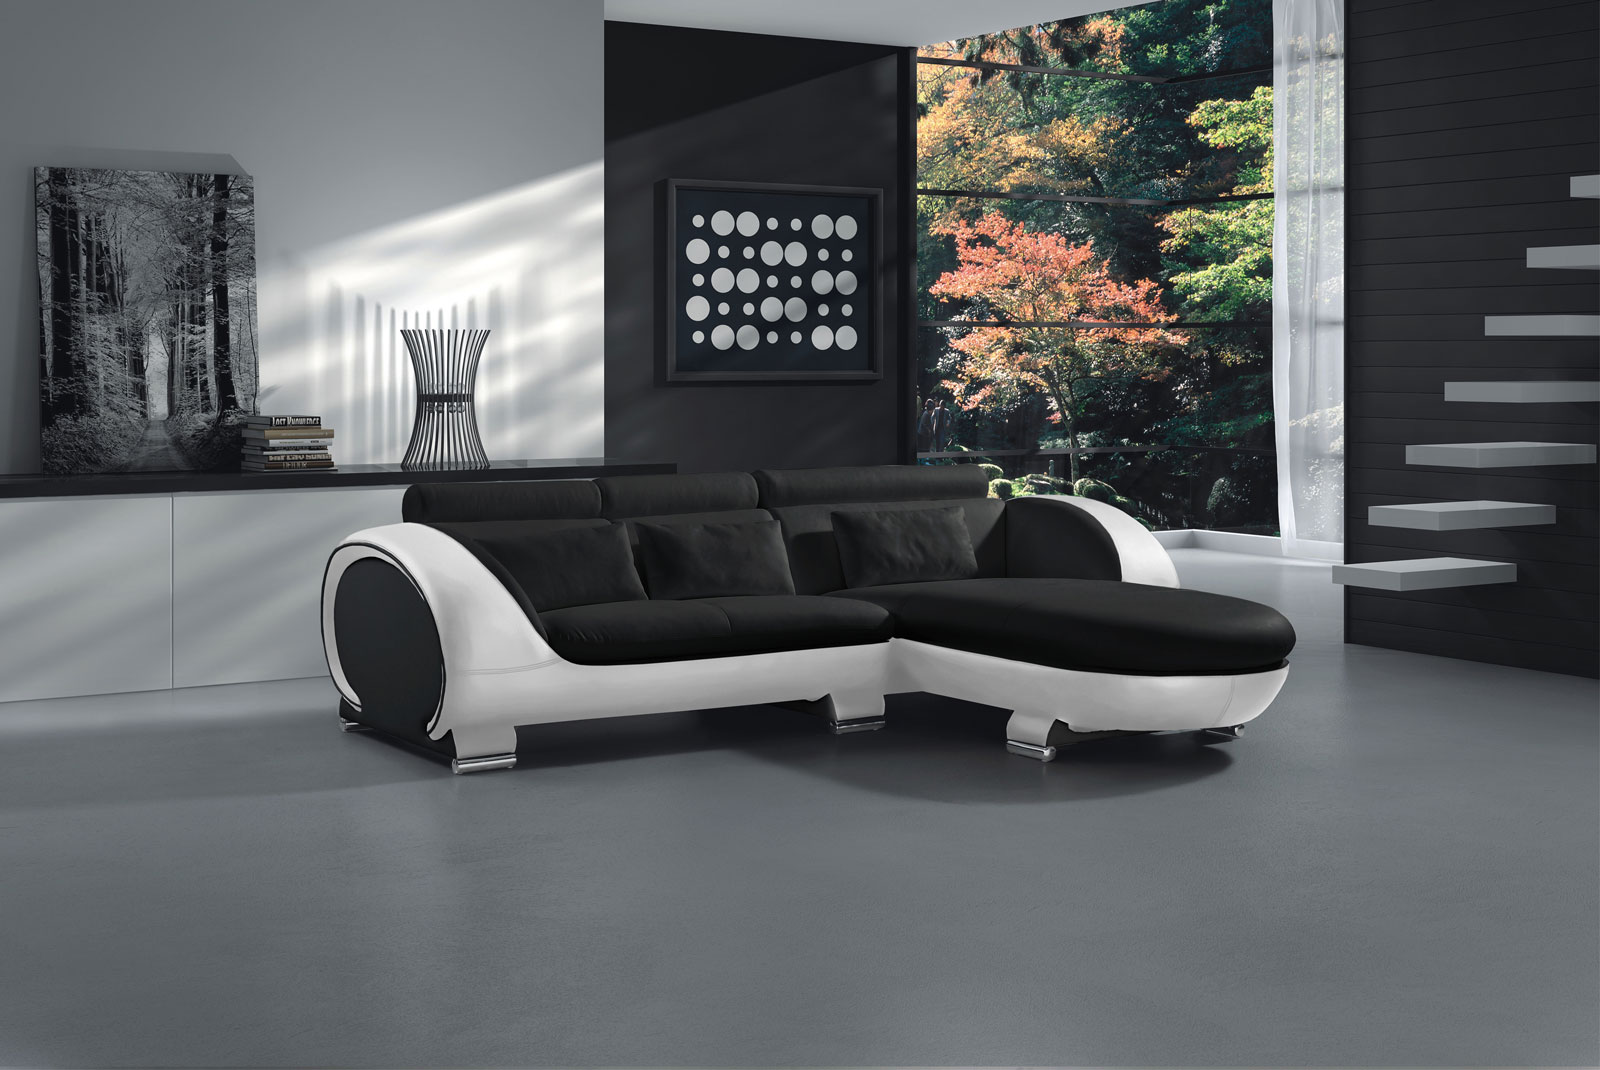 sam sofa schwarz wei vigo combi 1 couch 242 x 181 cm. Black Bedroom Furniture Sets. Home Design Ideas